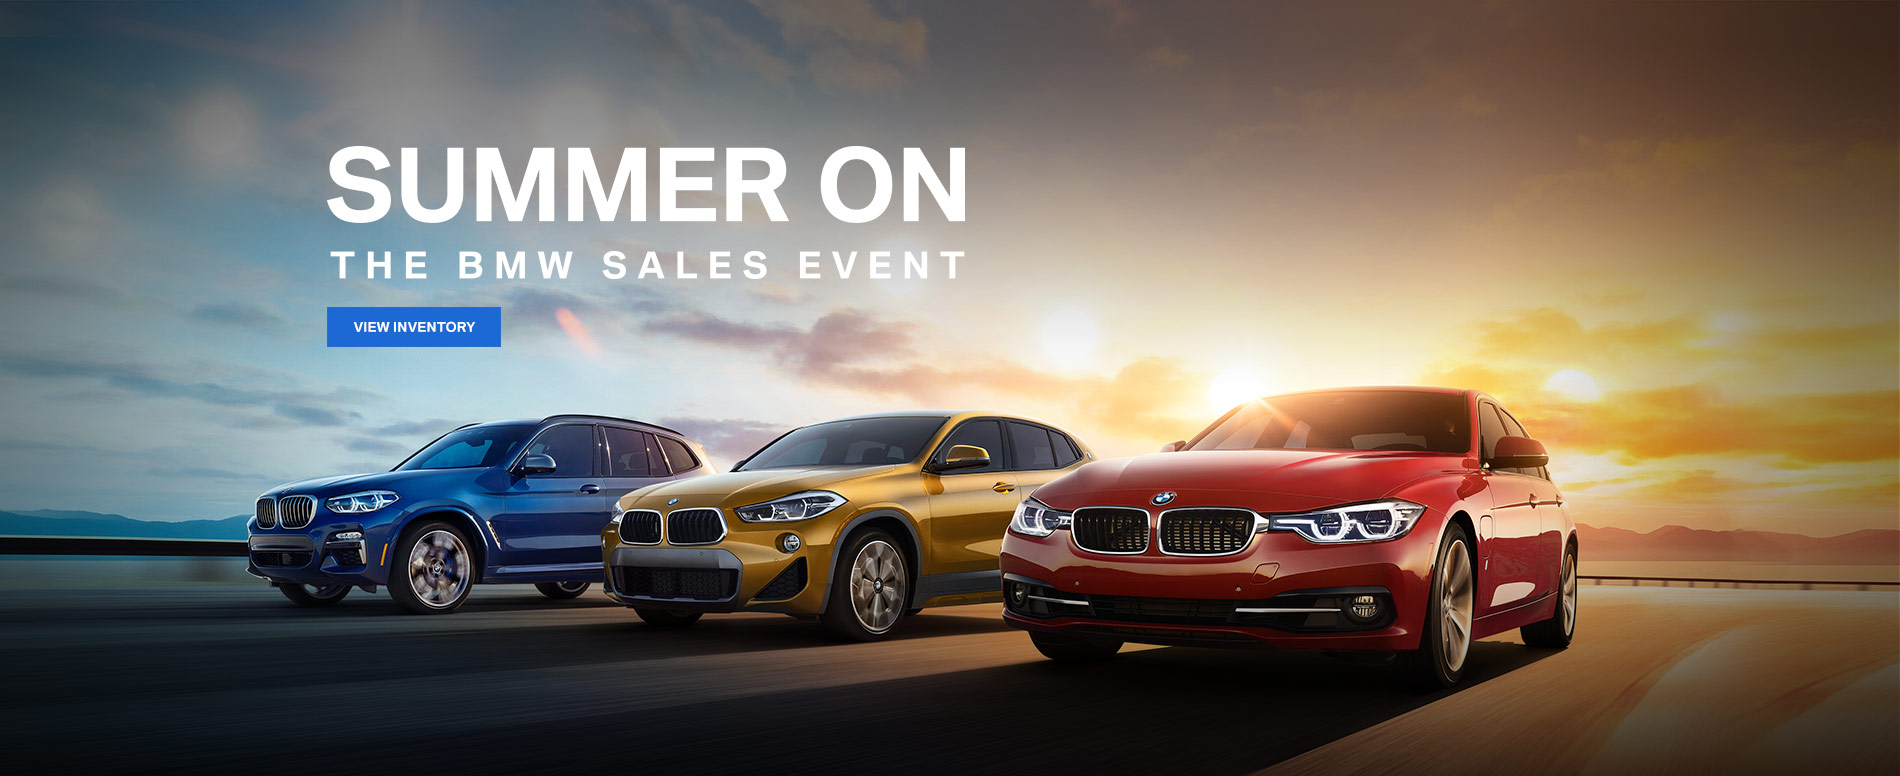 BMW_Summer_On_2018_FMA